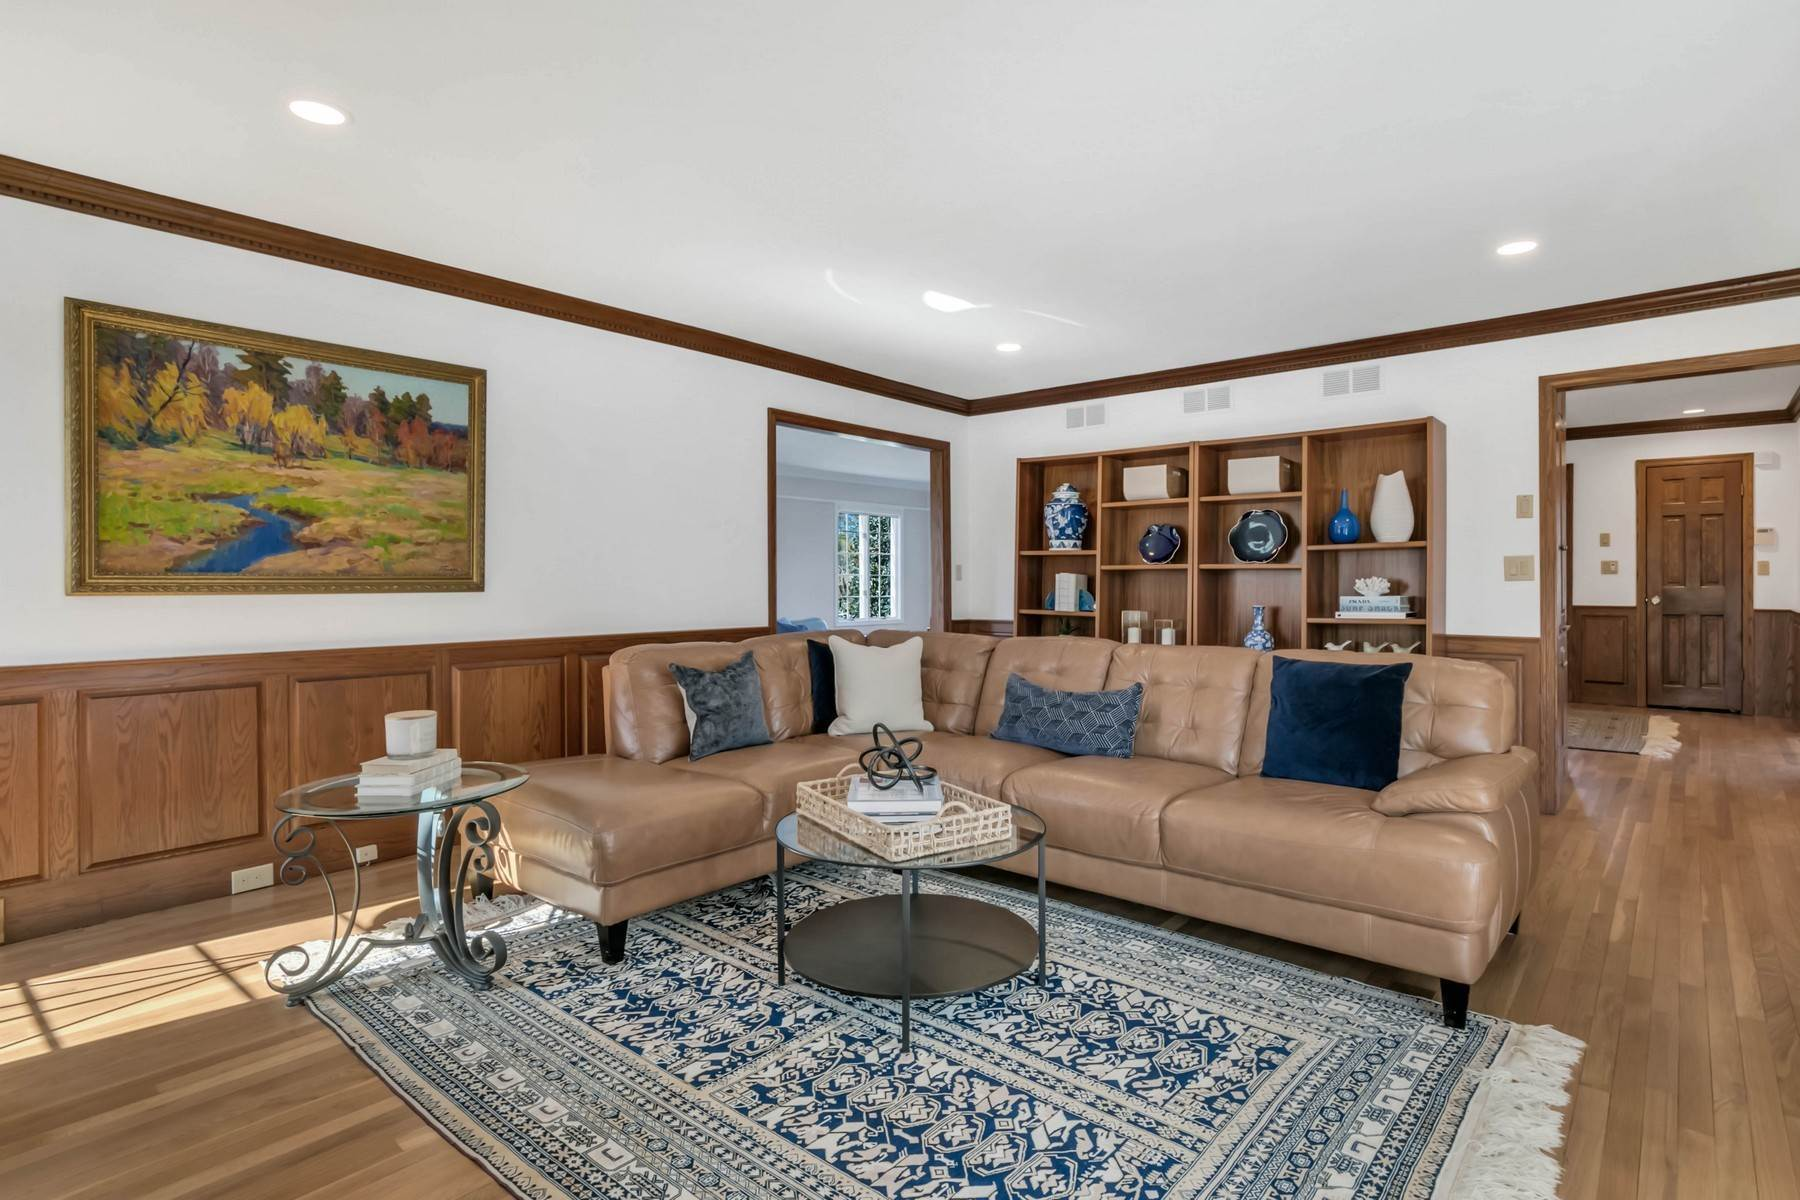 10. Single Family Homes for Sale at Elegance Meets Edgy Infused with Exceptional Quality and Custom Updates 130 Lippincott Road Little Silver, New Jersey 07739 United States